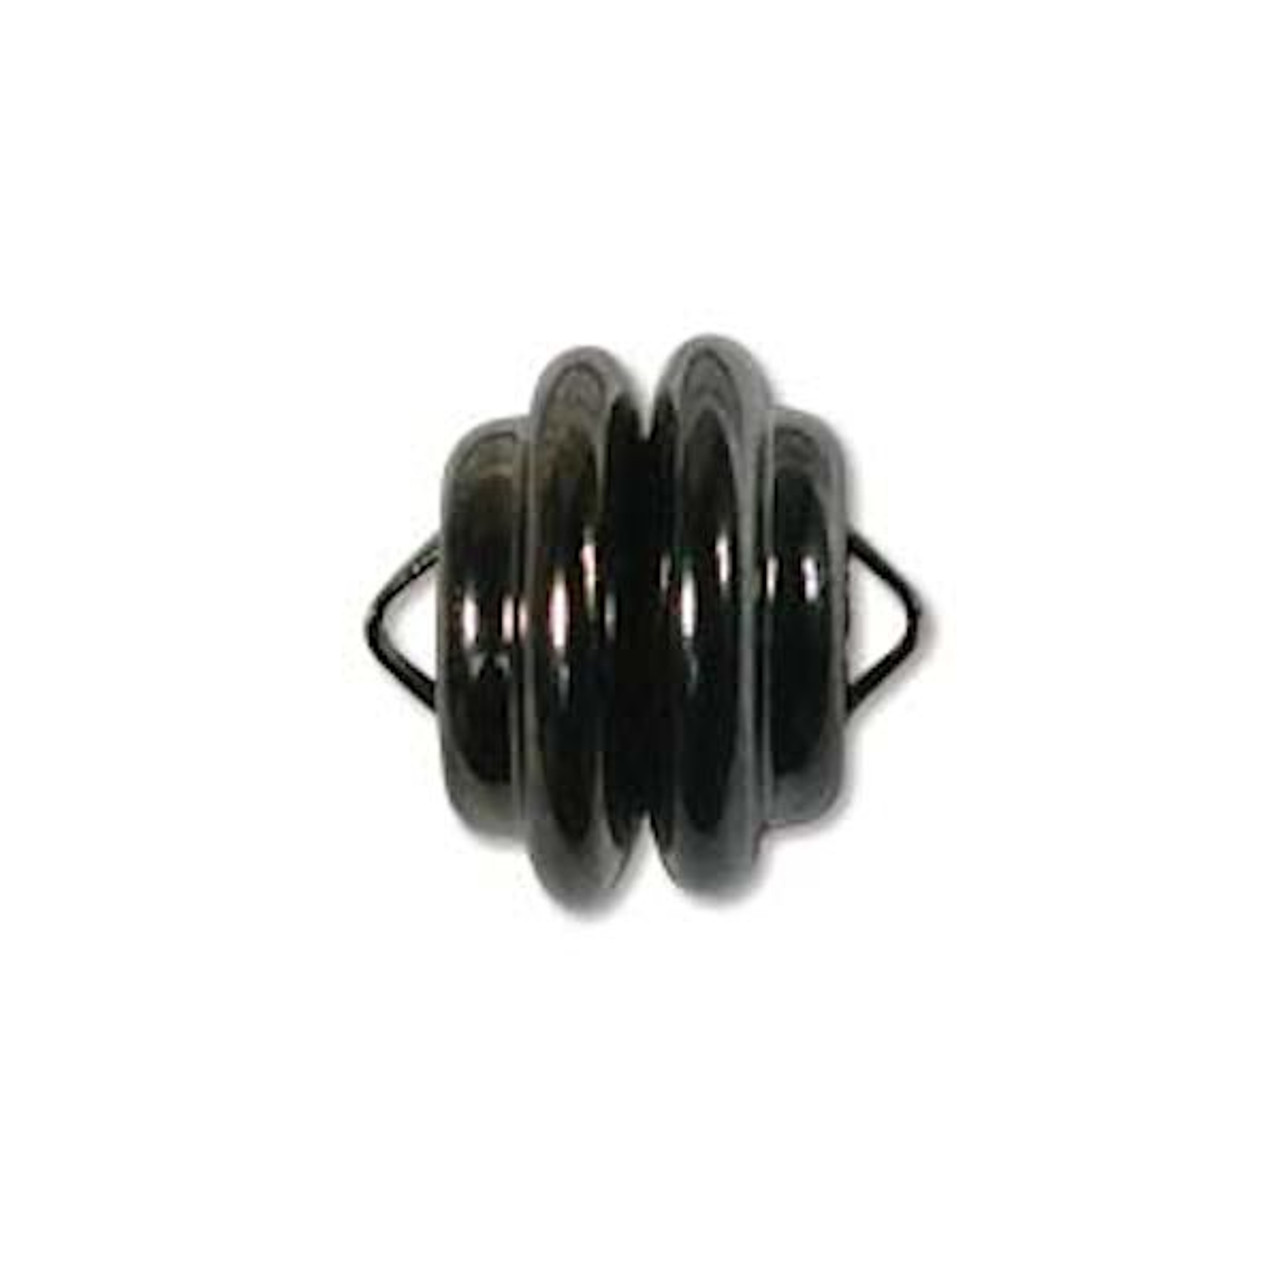 12 Black Oxide Plated Steel Strong 6mm Magnetic Clasps with 2mm Loops